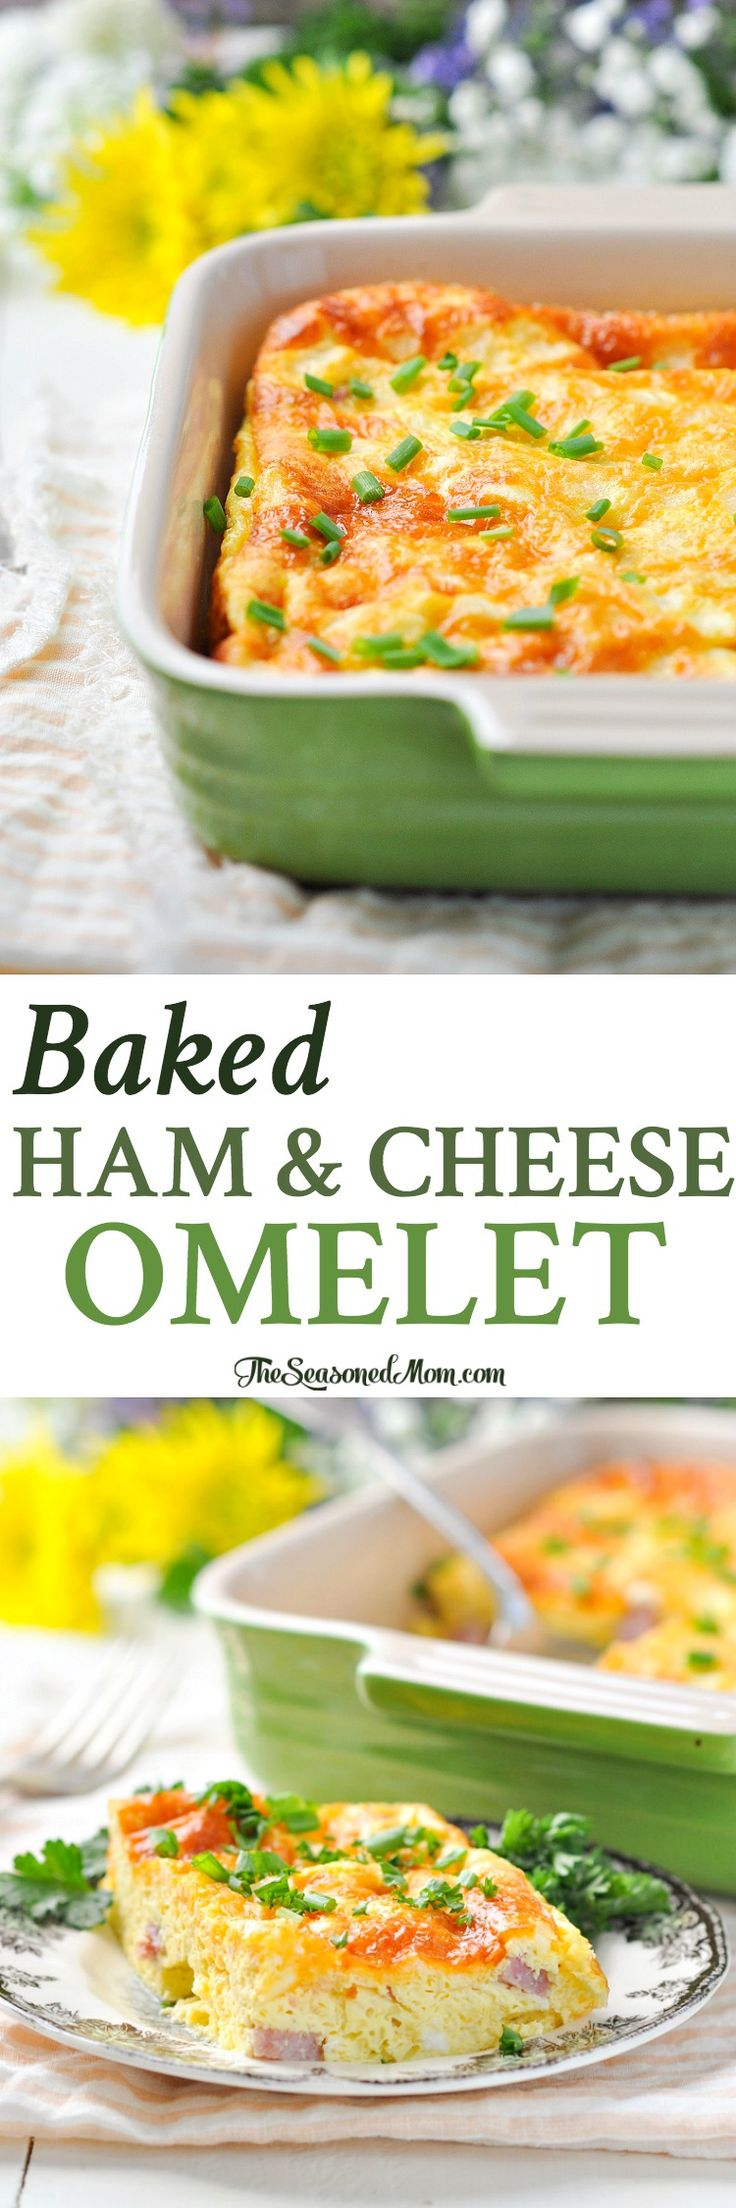 Baked Ham and Cheese Omelet   Healthy Breakfast Recipes   Breakfast Ideas Healthy   Breakfast Casserole   Leftover Ham Recipes   Brunch Ideas   Brunch Recipes   Brunch Party   Egg Recipes